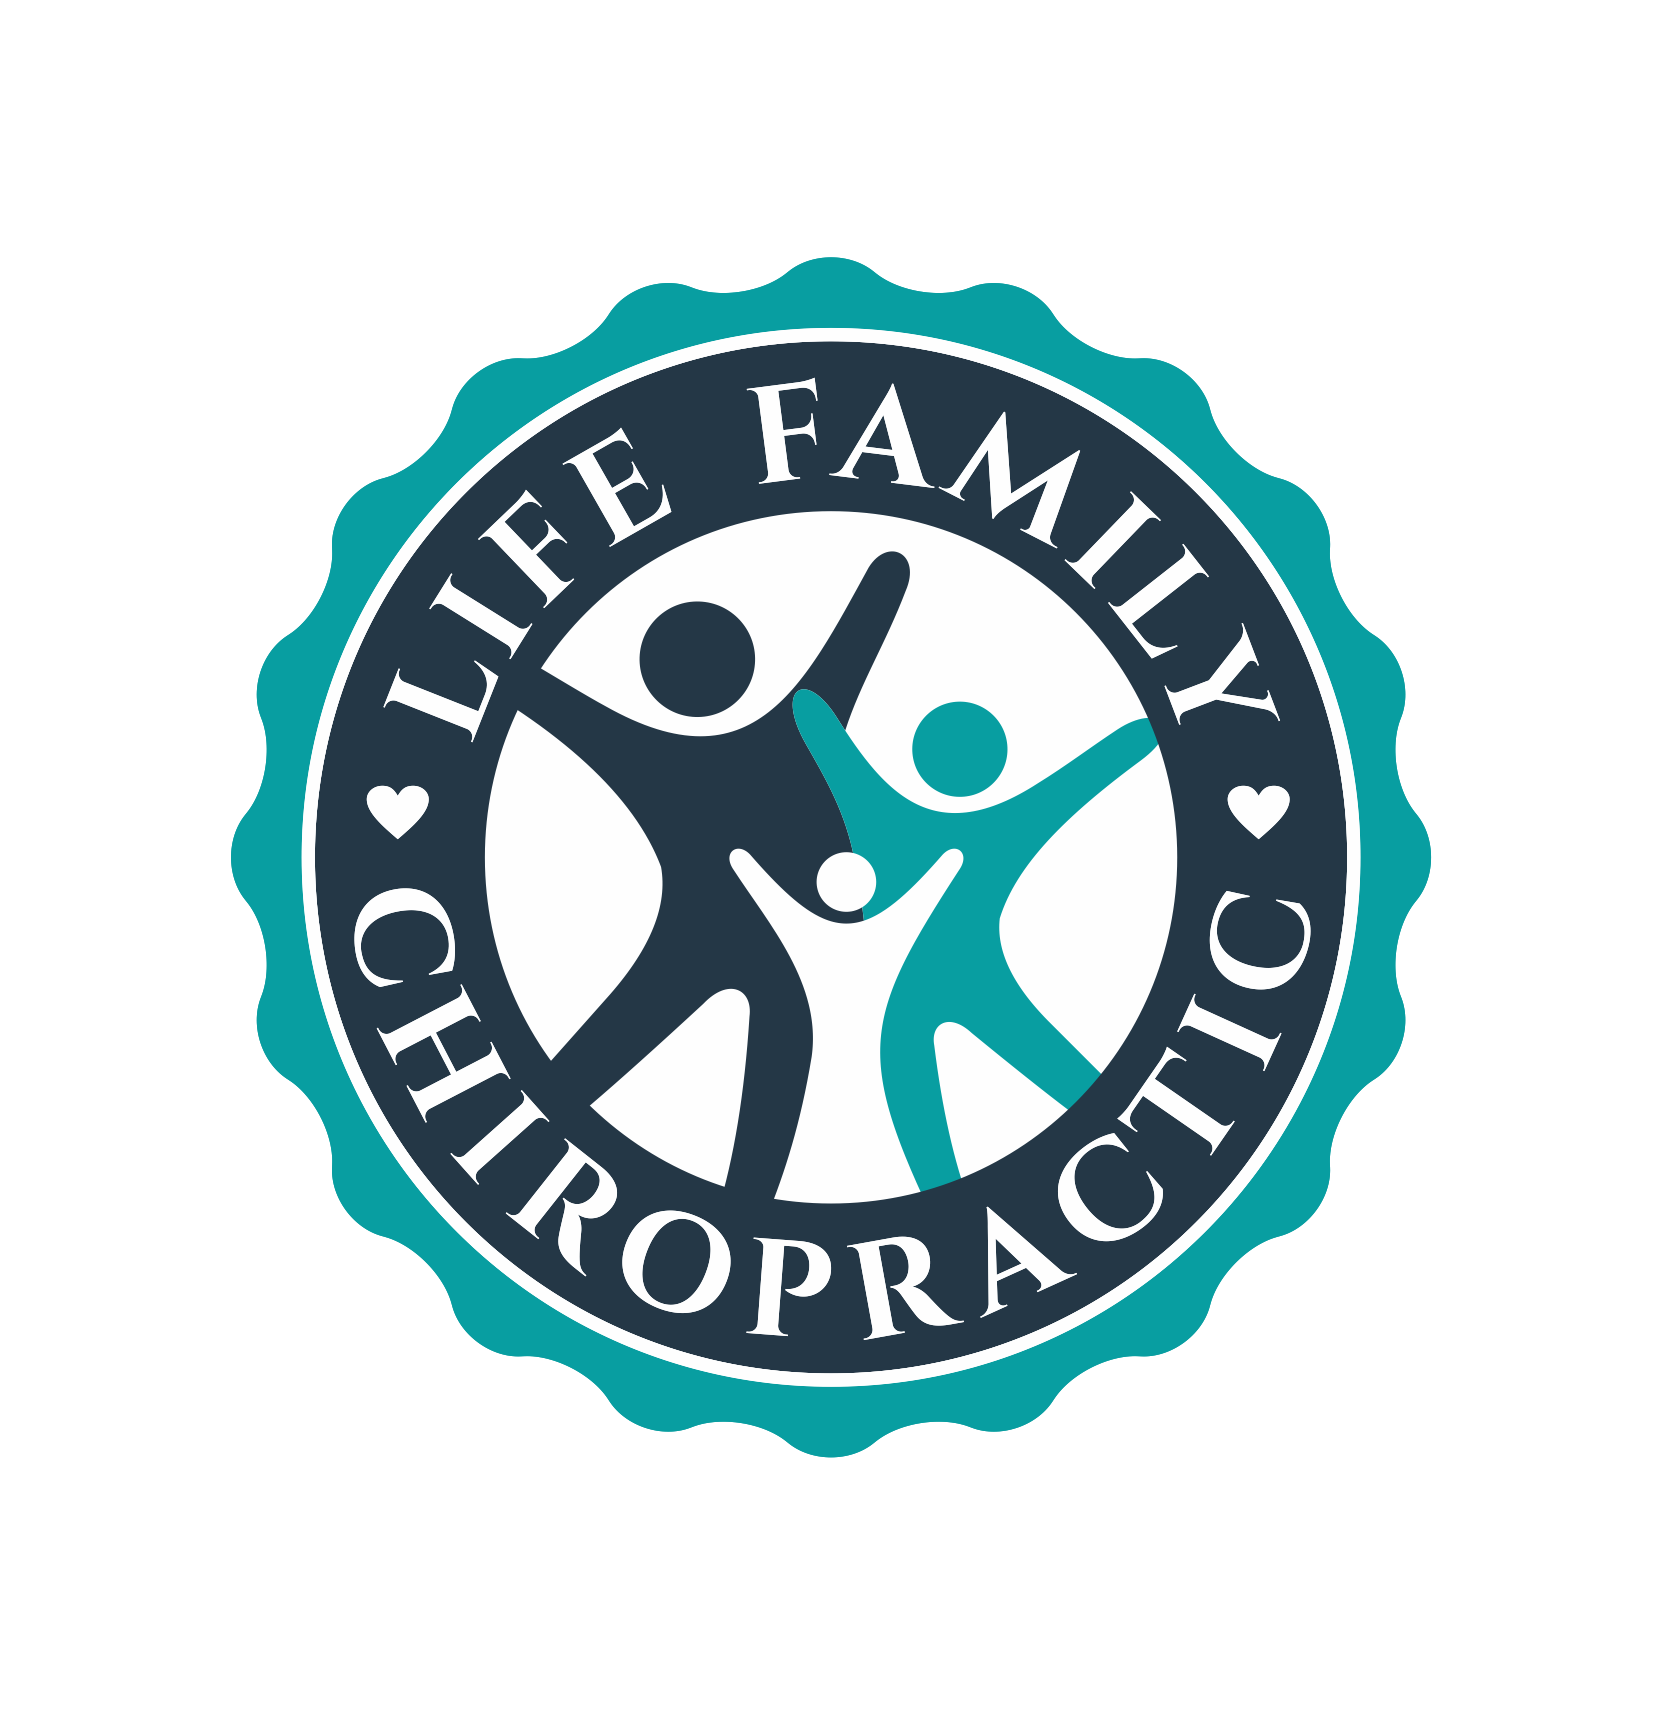 LifeFamilyCH circle_transparent background_V3 WHITE.png